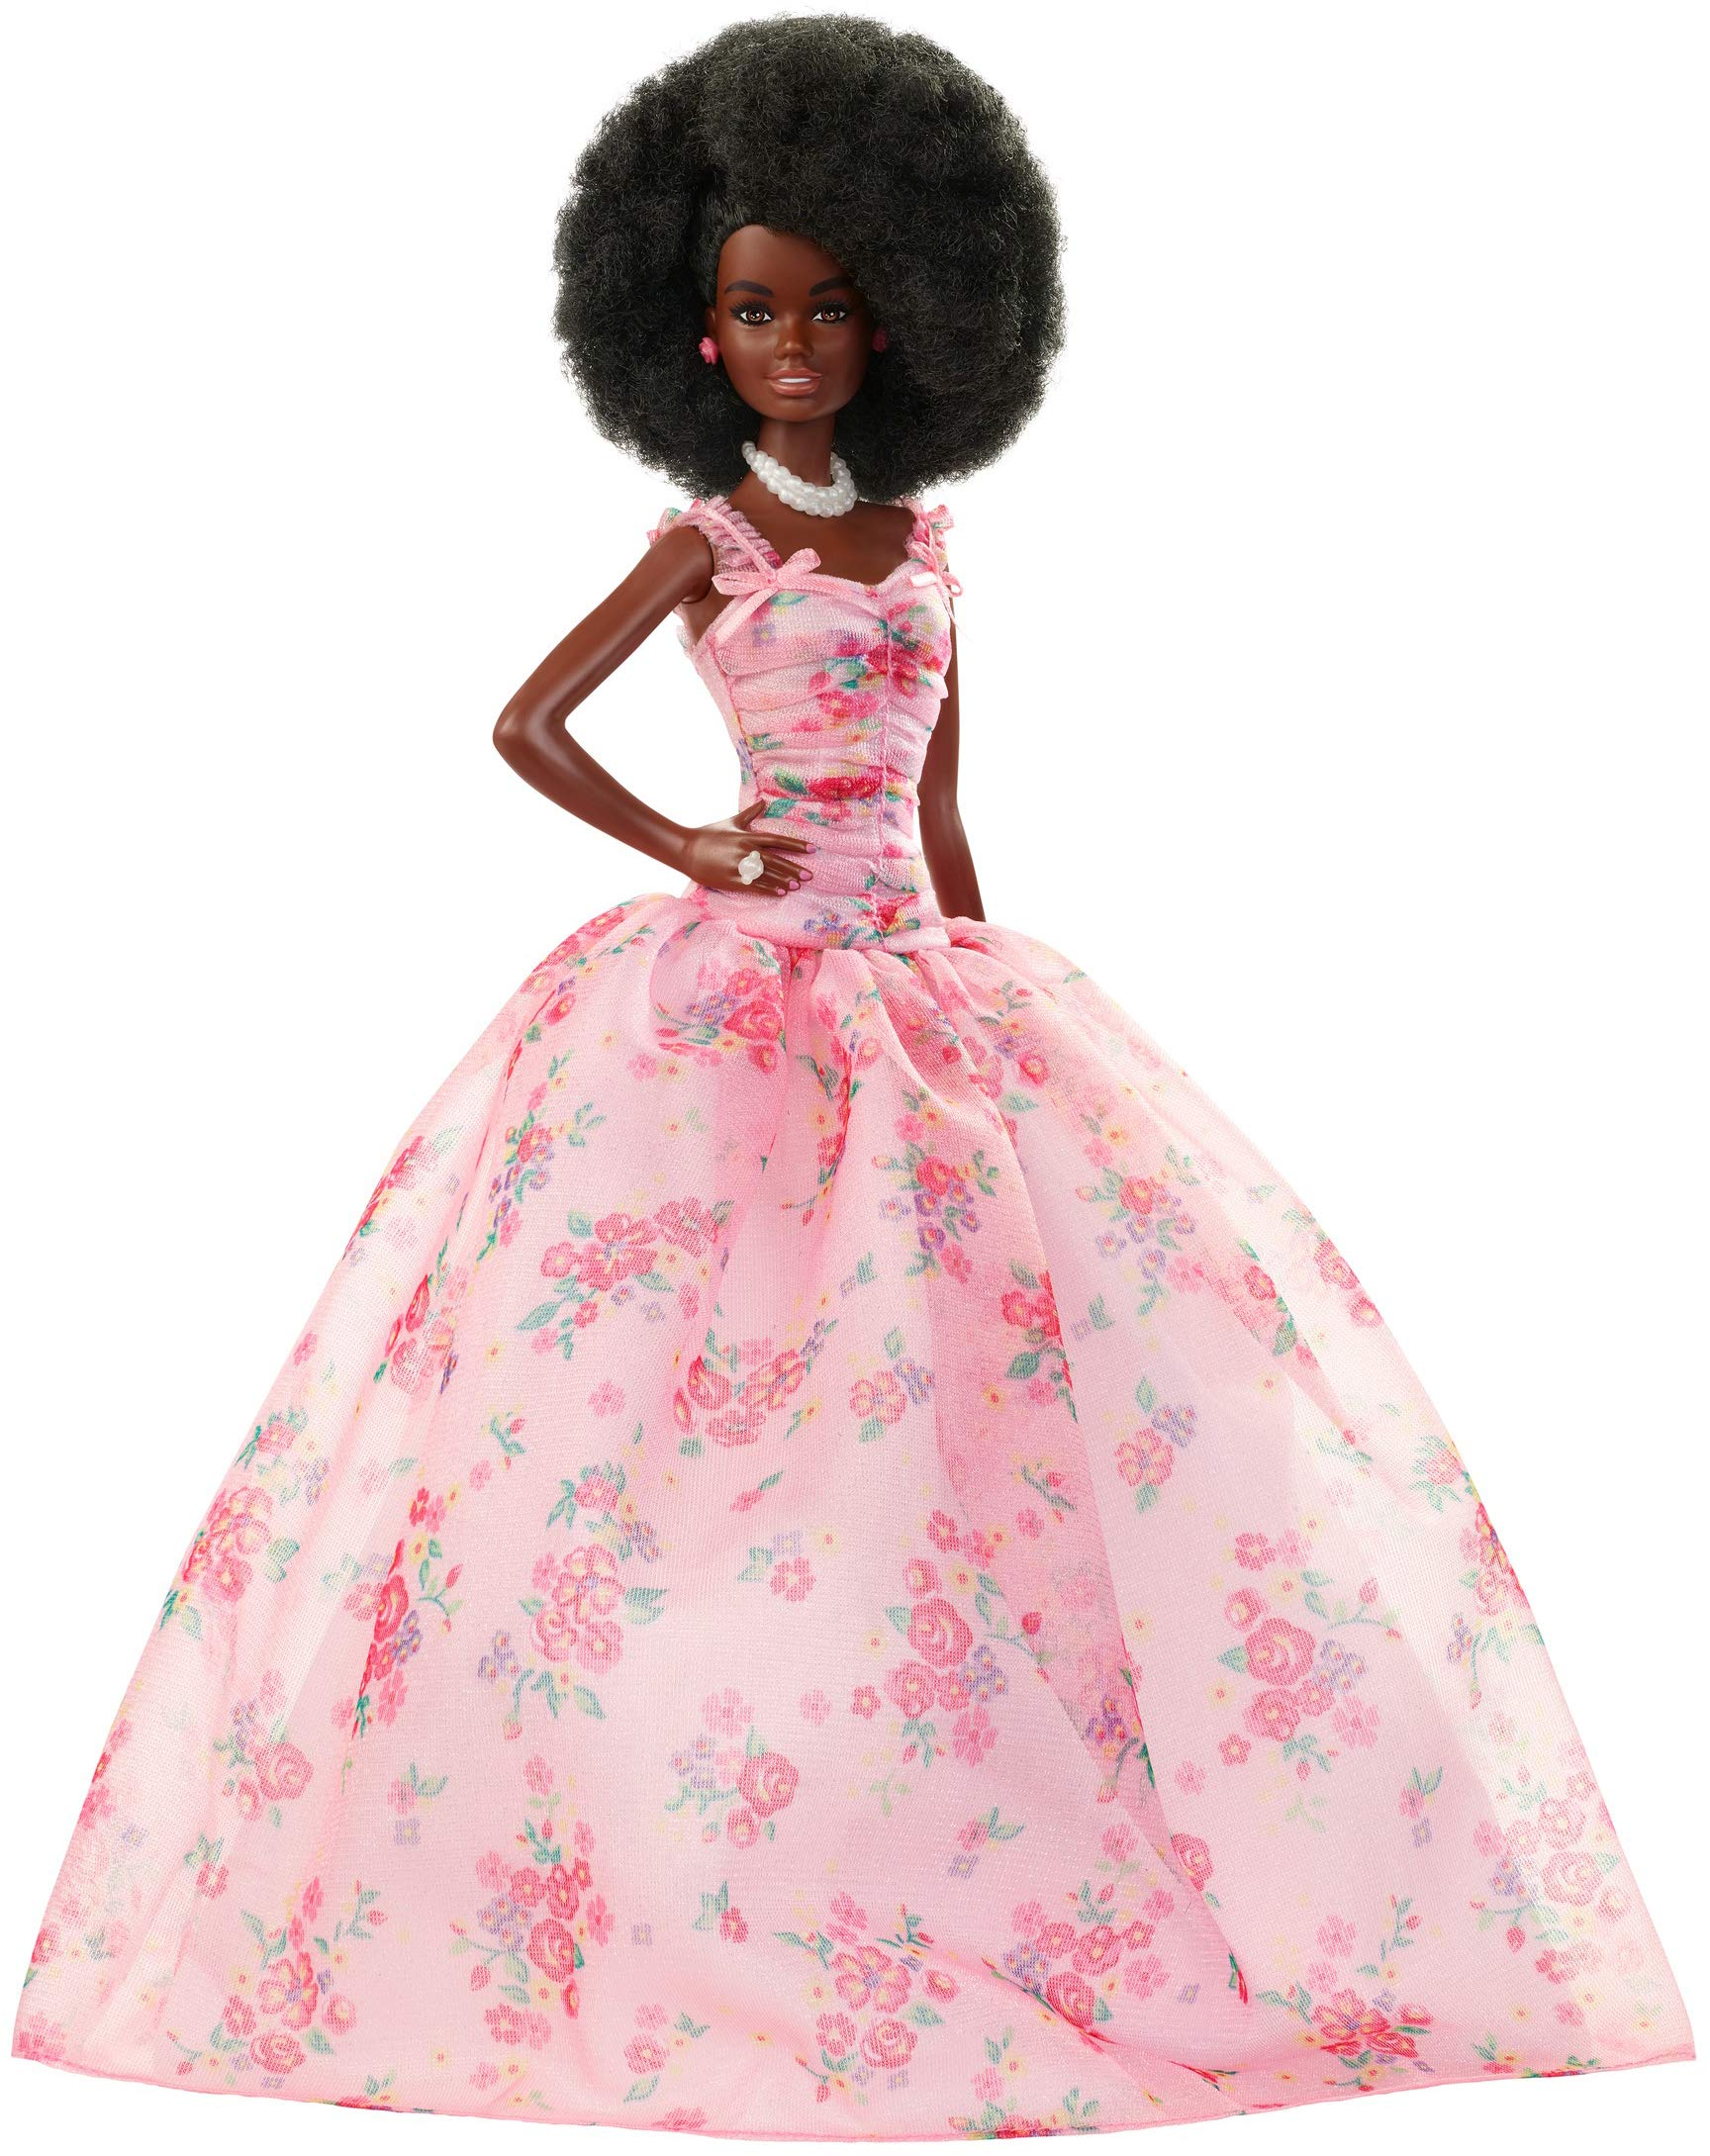 Barbie Collector: Birthday Wishes Doll with Curly Brunette Hair, 11.5-Inch, Wearing Floral Gown, with Doll Stand and Certificate of Authenticity, Makes A Great Gift for 6 Year Olds and Up